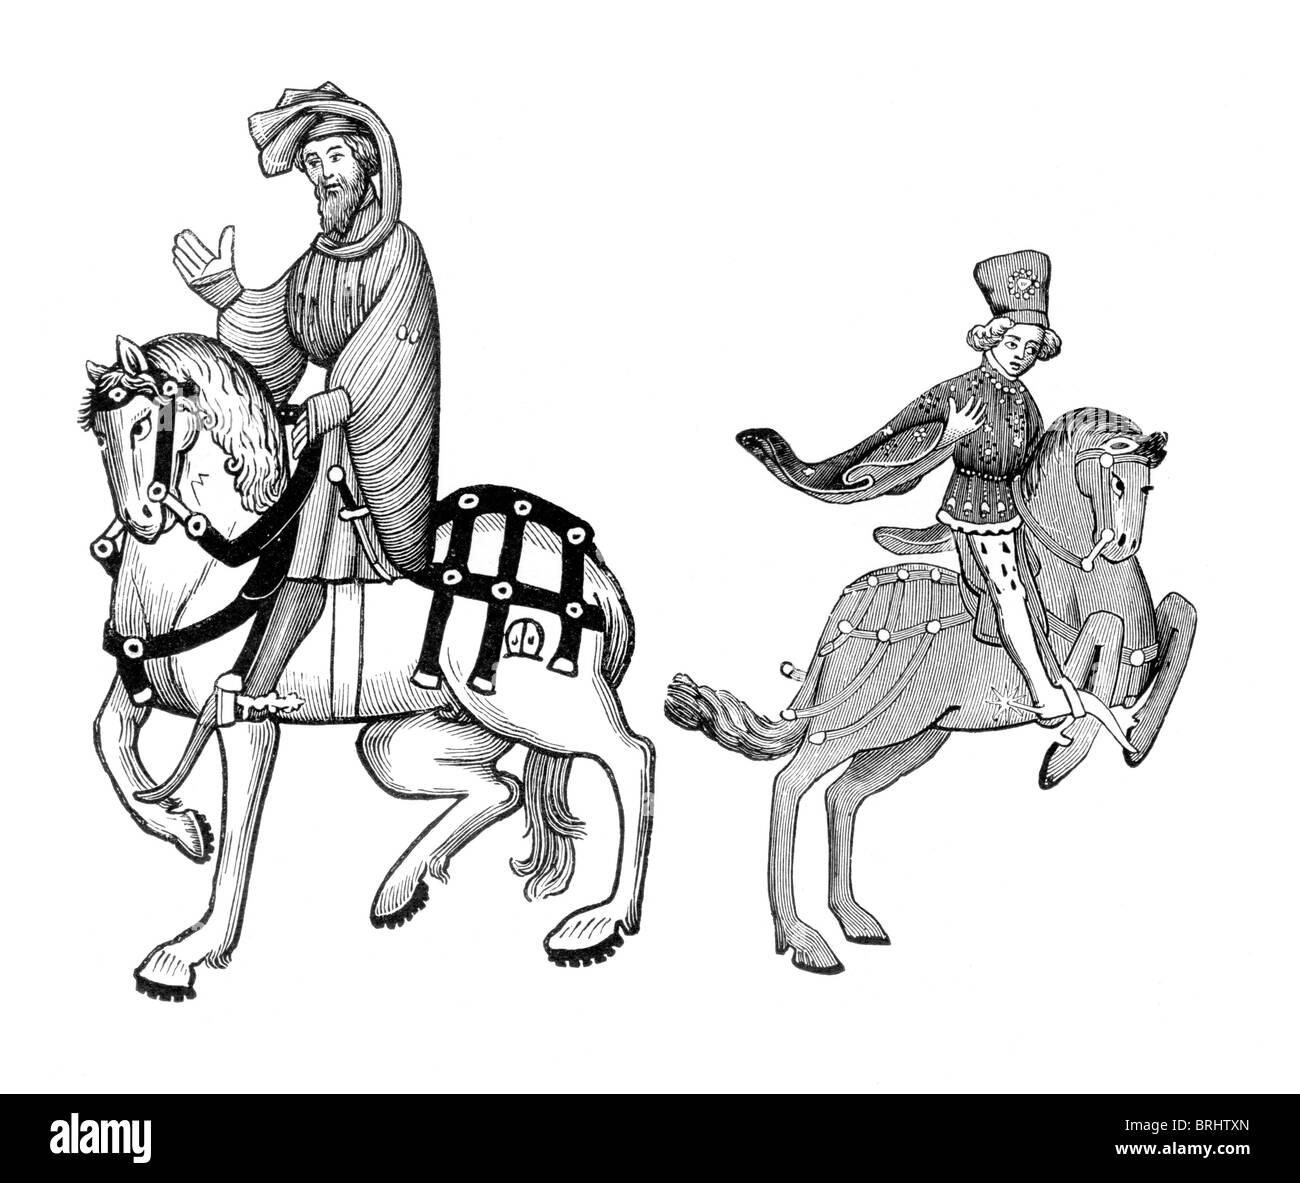 canterbury tales the knight The canterbury tales travel with the knight  and the rest of the pilgrims to canterbury as they tell the tales that have delighted.